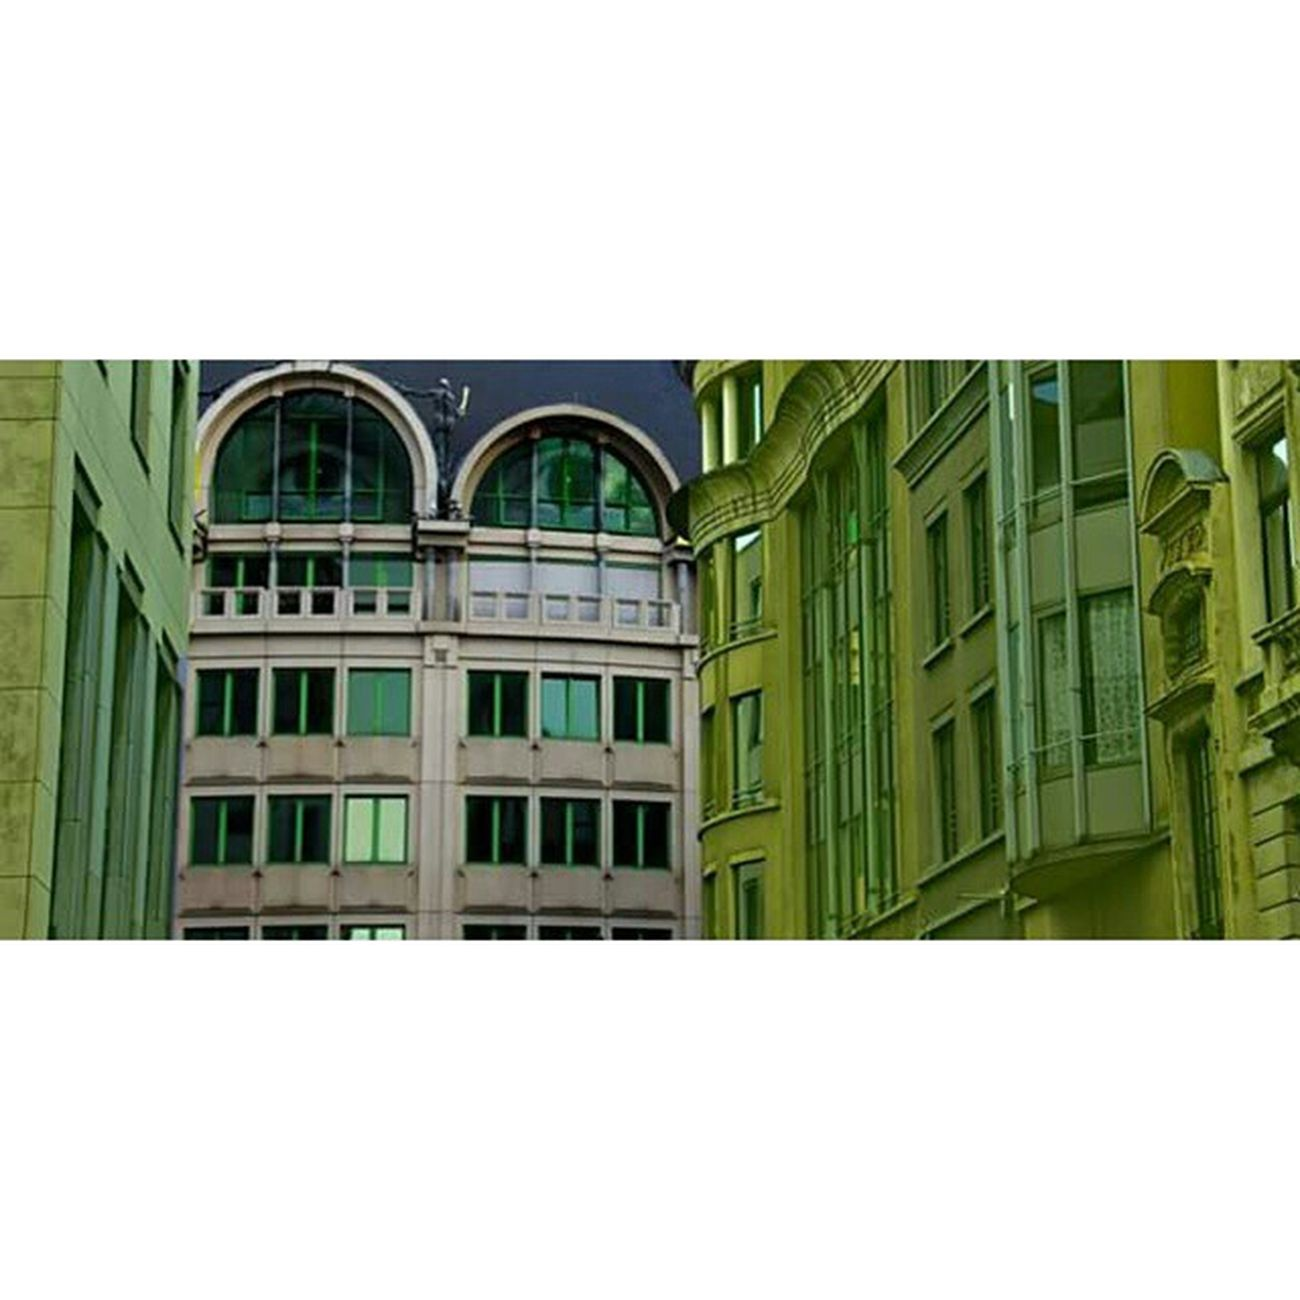 Look Lookyou Regard Jetevois Eyes Yeux Fenêtre Windows Architecture Brussels Bruxelles Centre Ville Centreville Green Vert Tön Tone Marvin